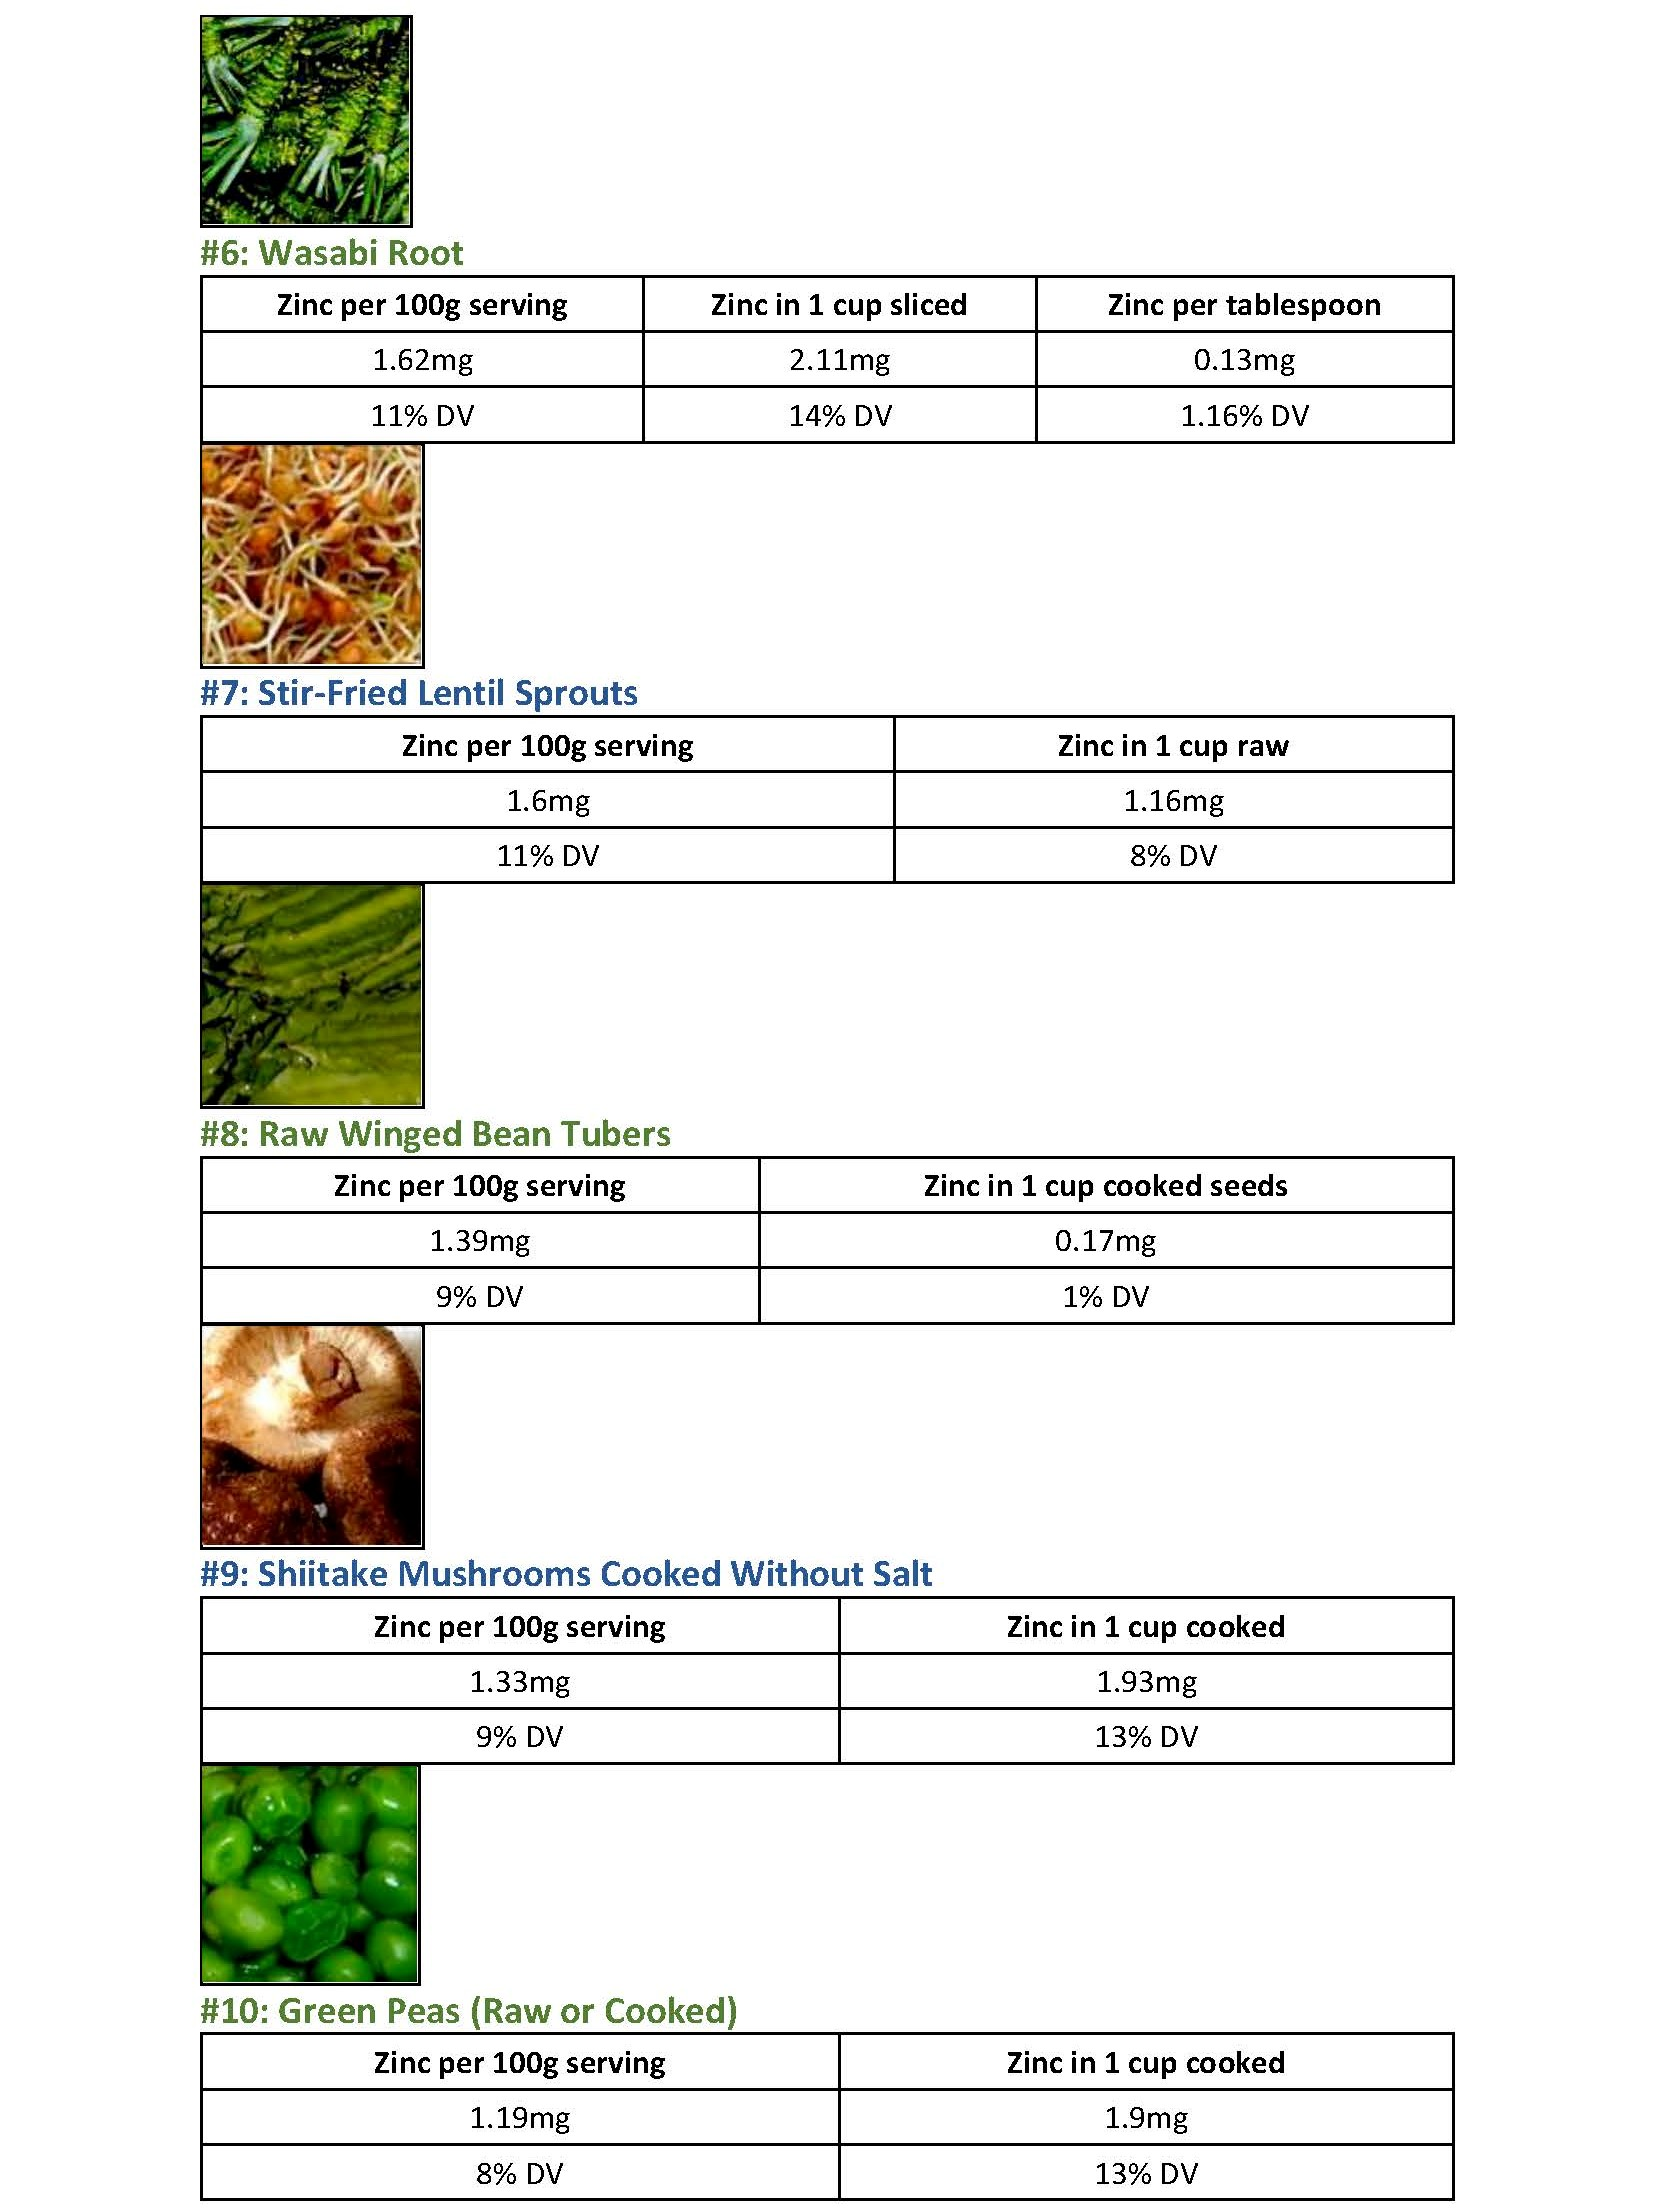 natural-sources-zinc-table-1page2.jpg